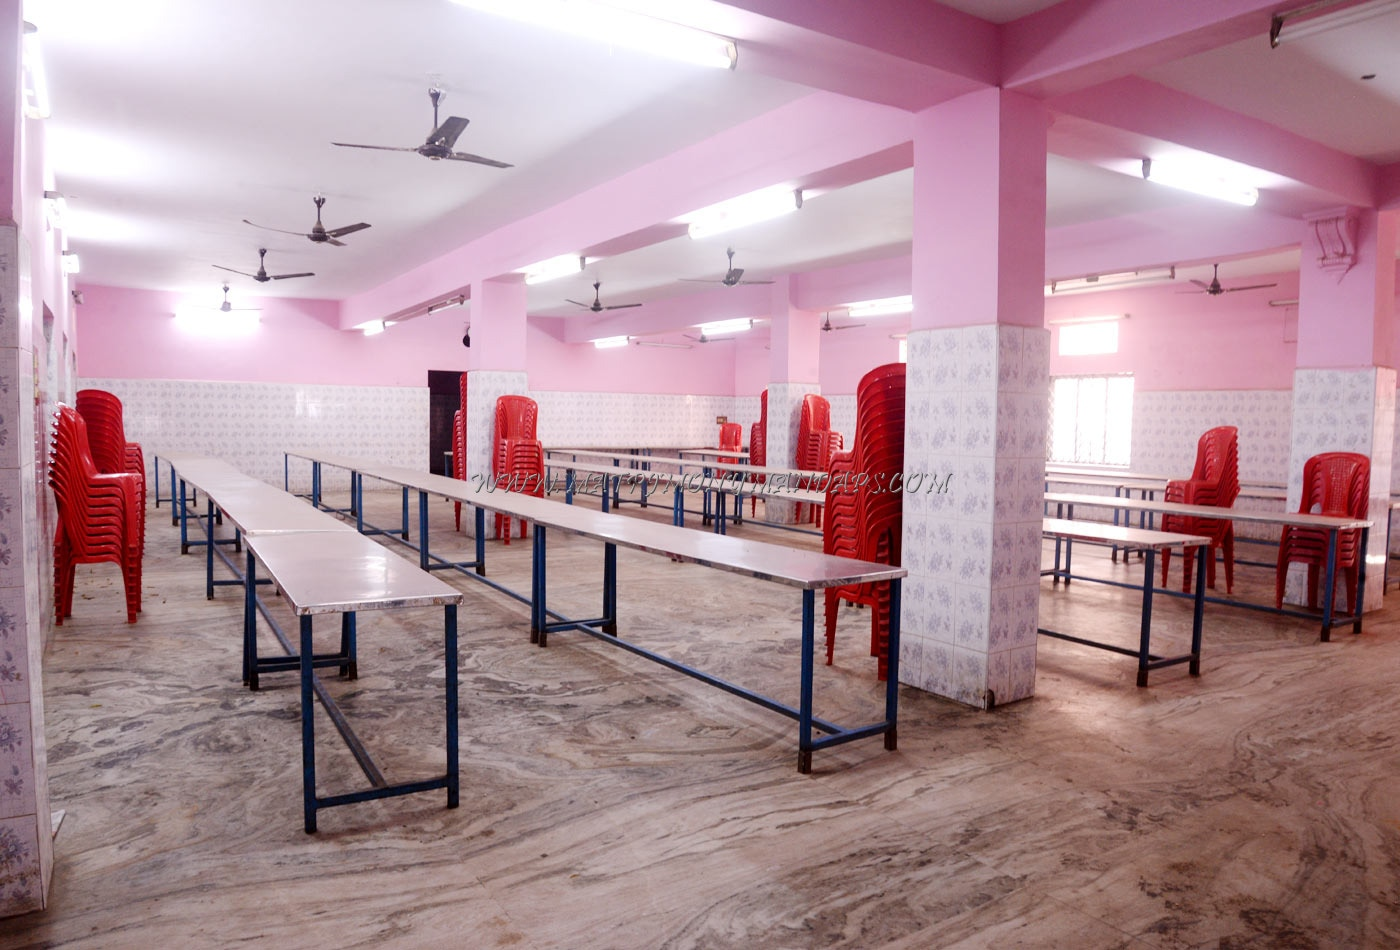 Find the availability of the Kavya Thirumana Mandapam in Moulivakkam, Chennai and avail special offers